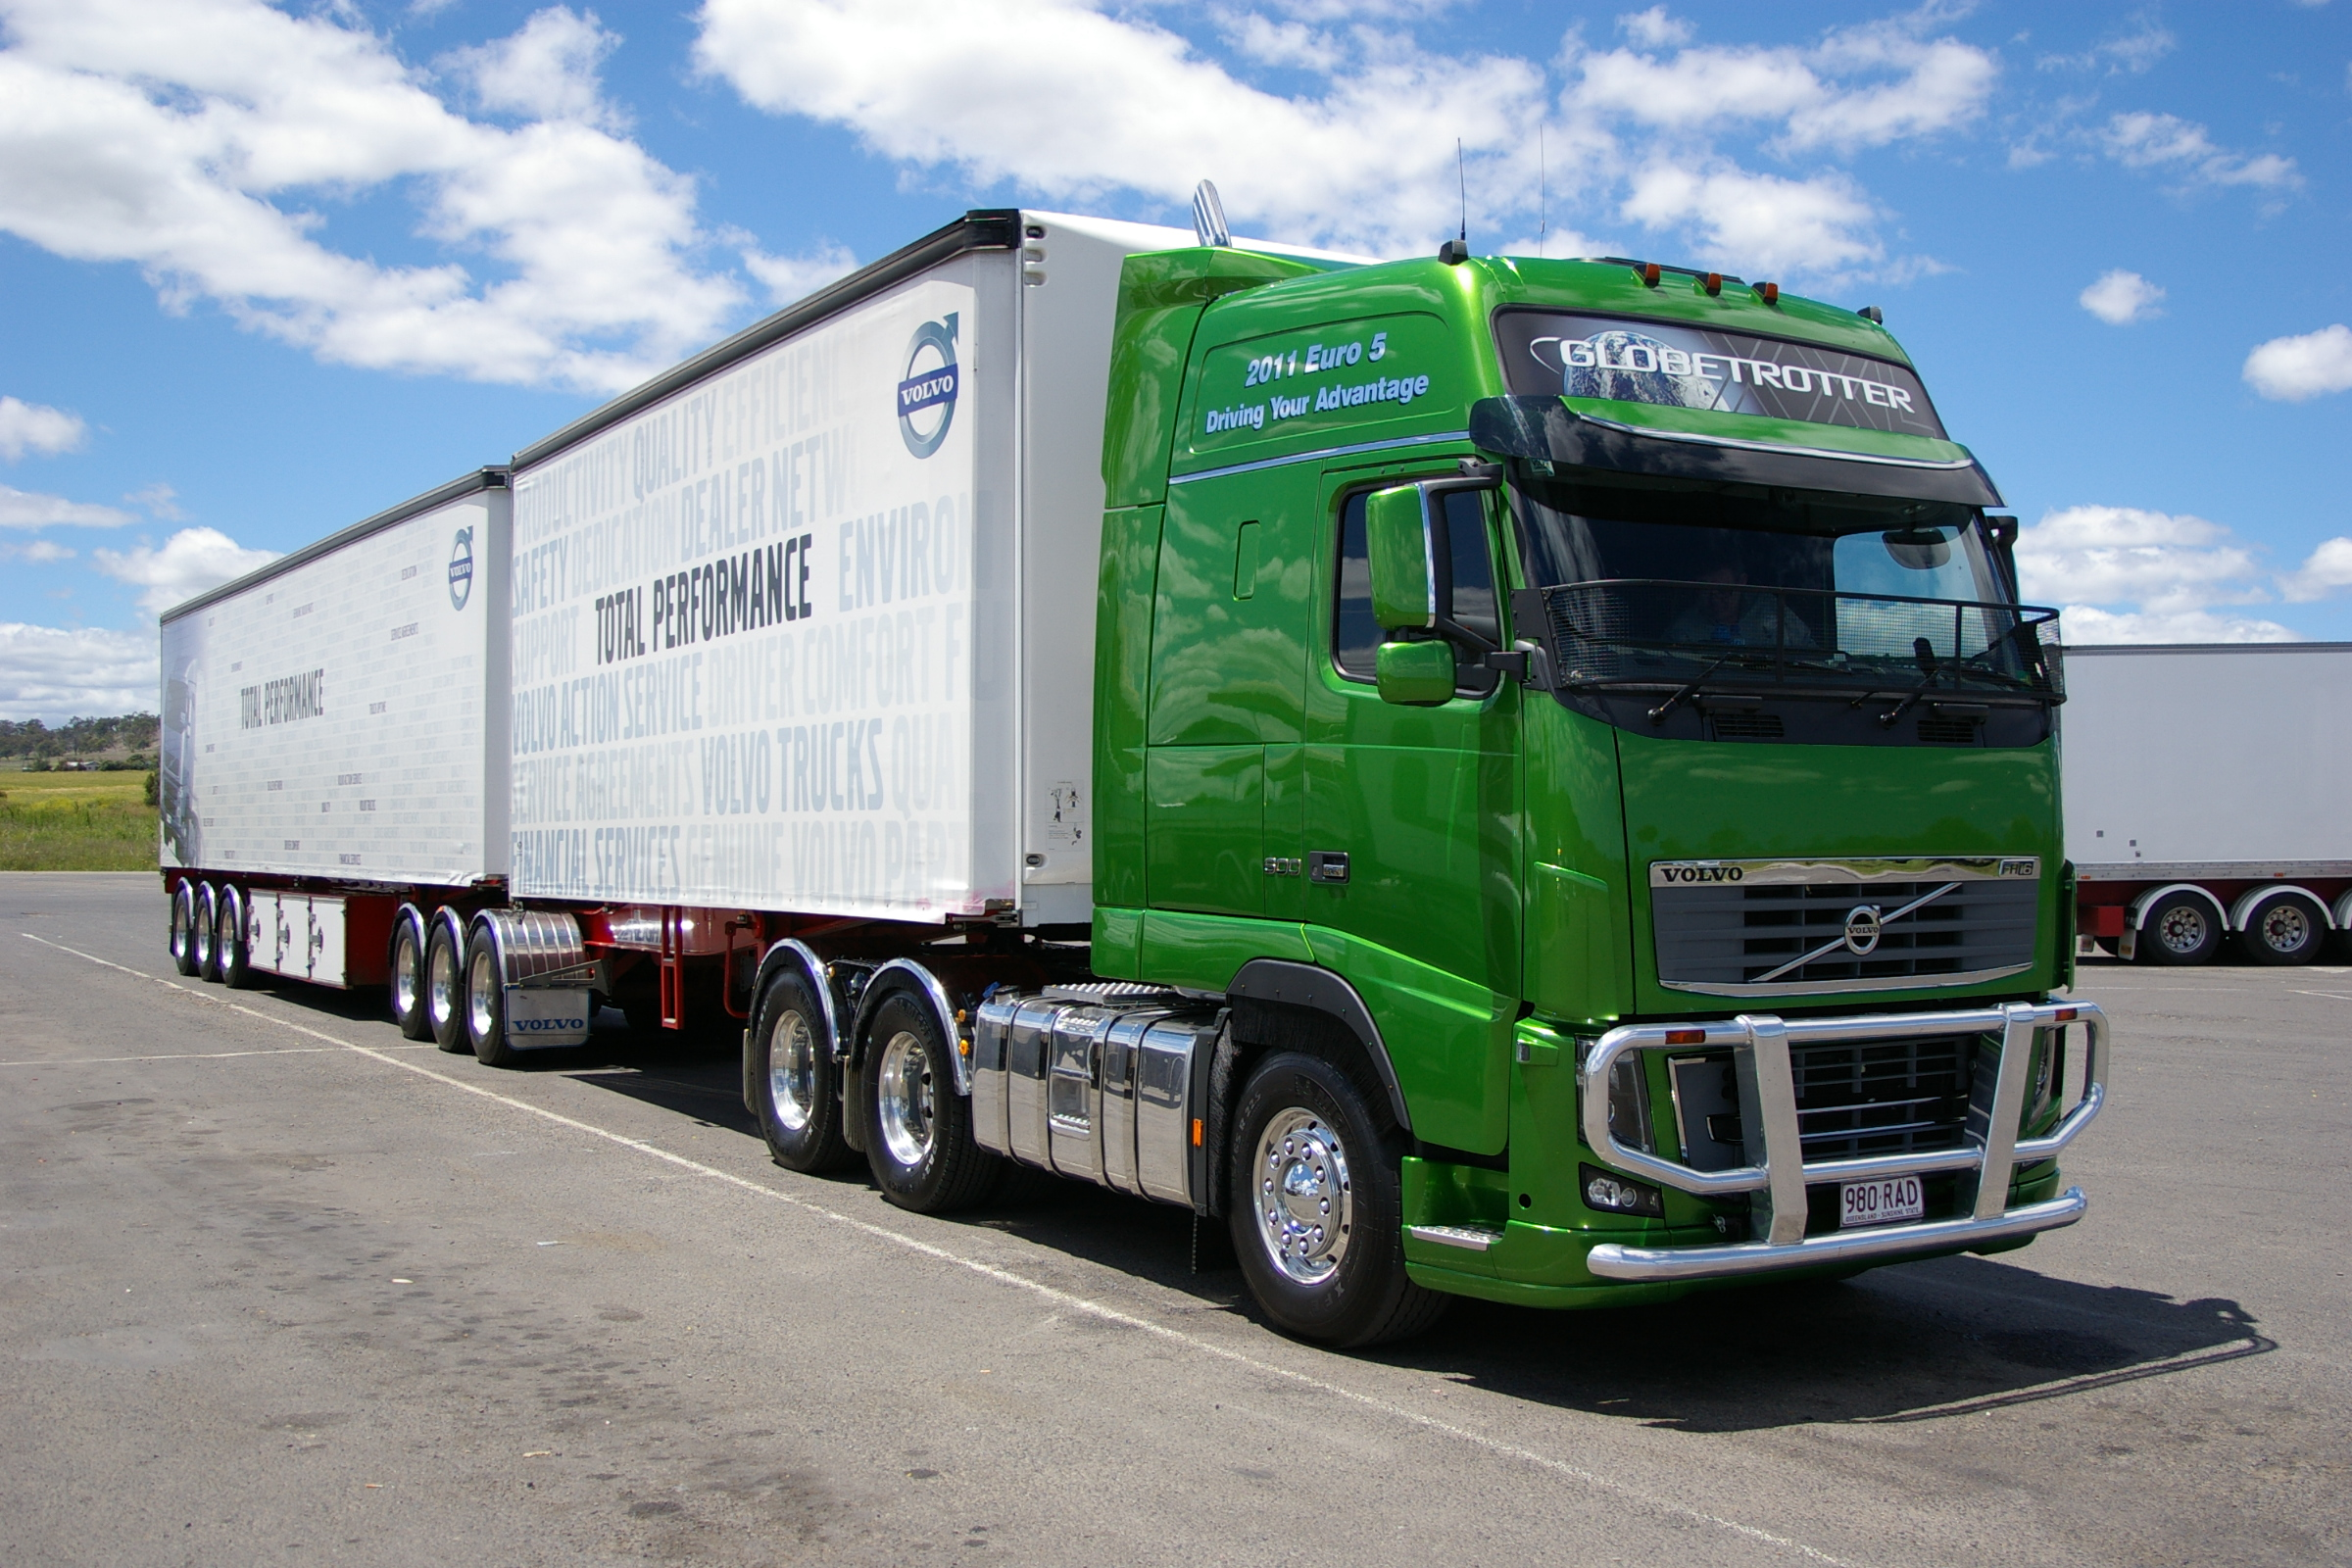 highest going on sell volvo all first bidder is news trucks proceeds motor up with sale puts ebay fh commercial for to charity the new